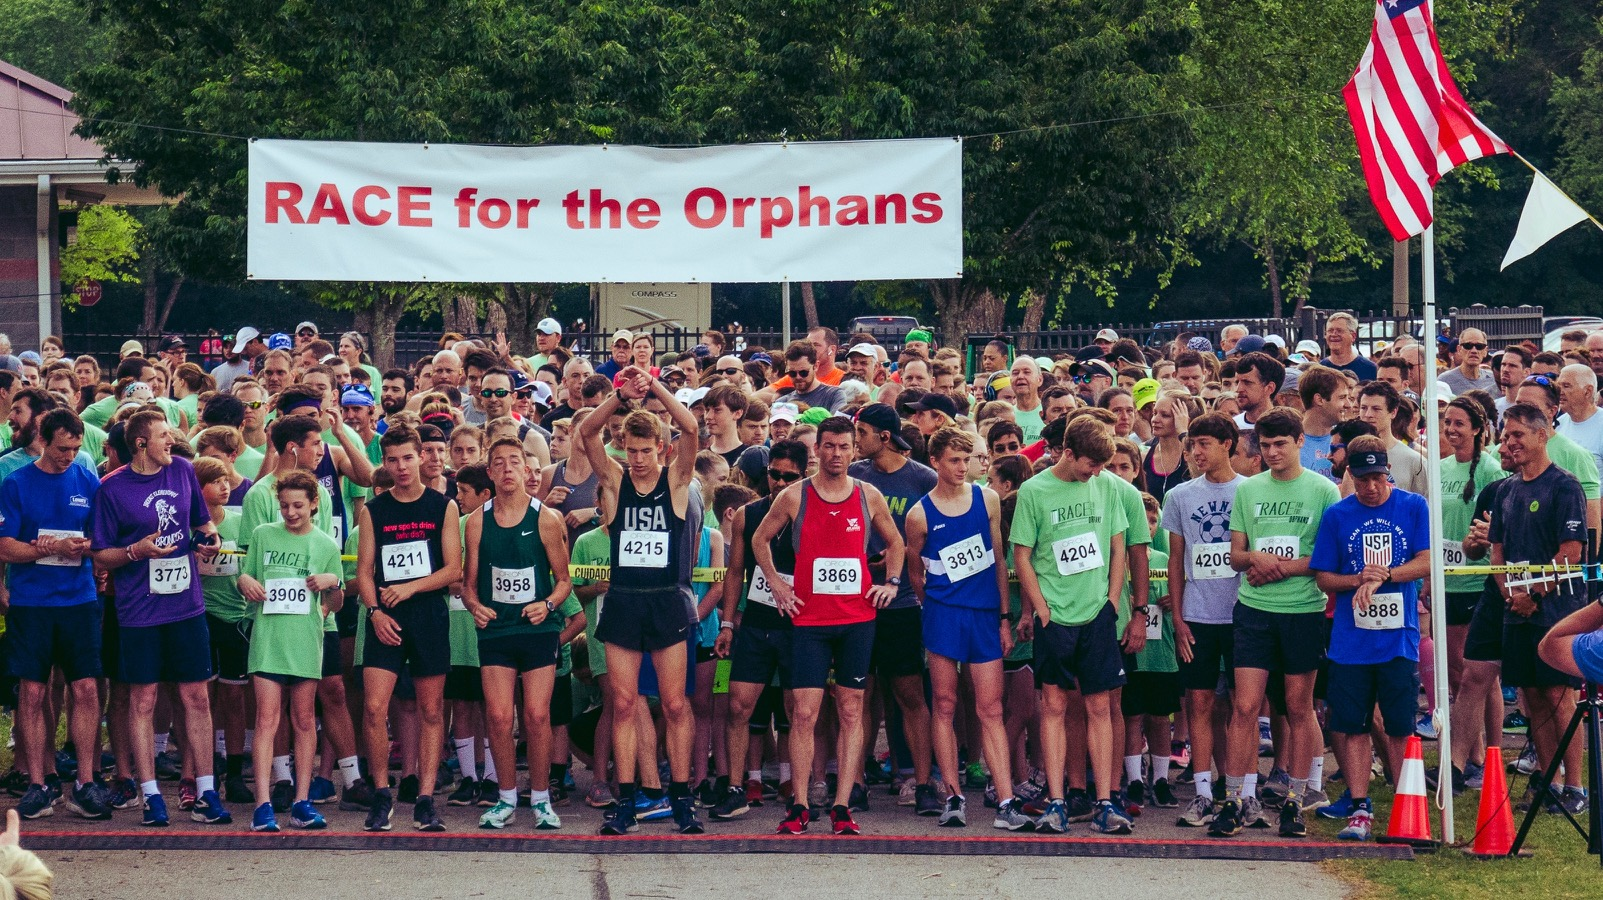 RACE for the Orphans - Raising Awareness Compassion and